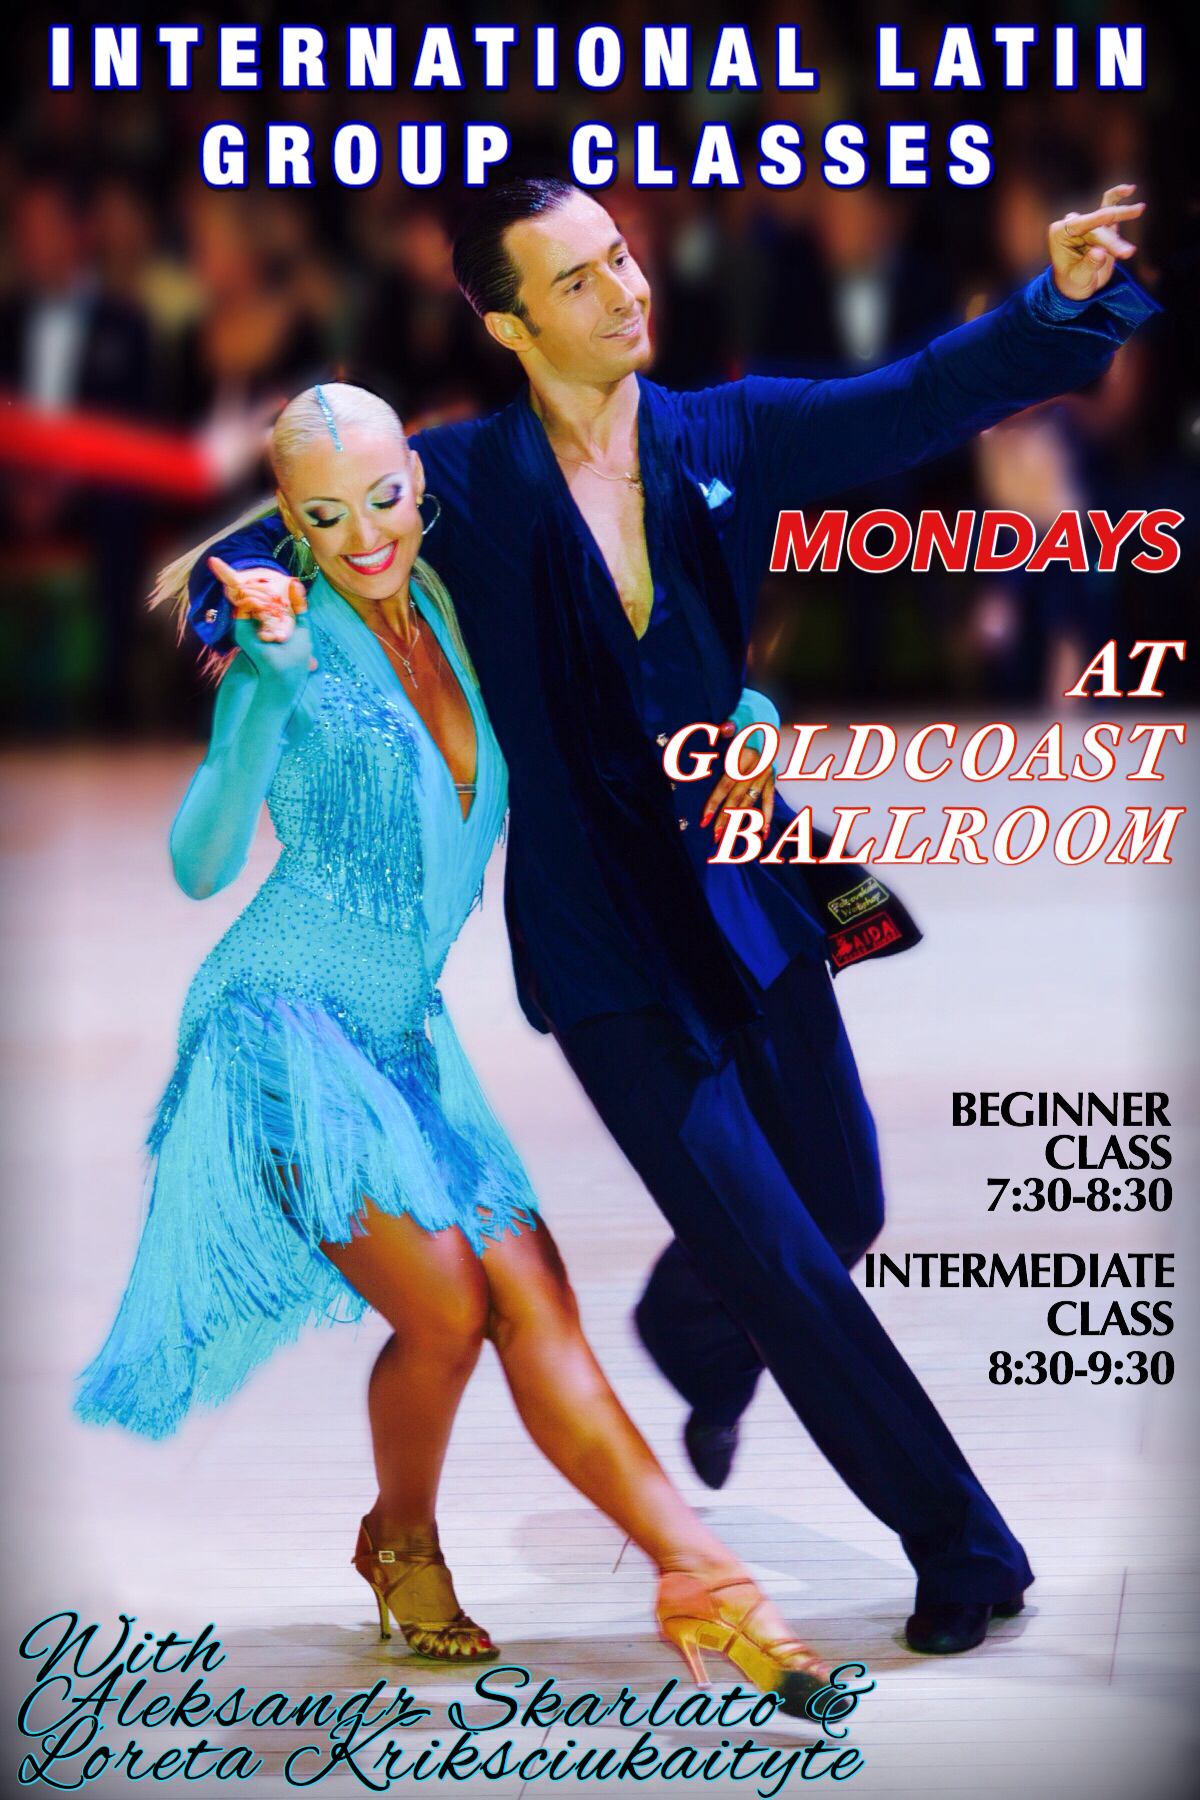 Aleksandr Skarlato & Loreta Kriksciukaityte - International Latin Classes - Mondays at Goldcoast Ballroom